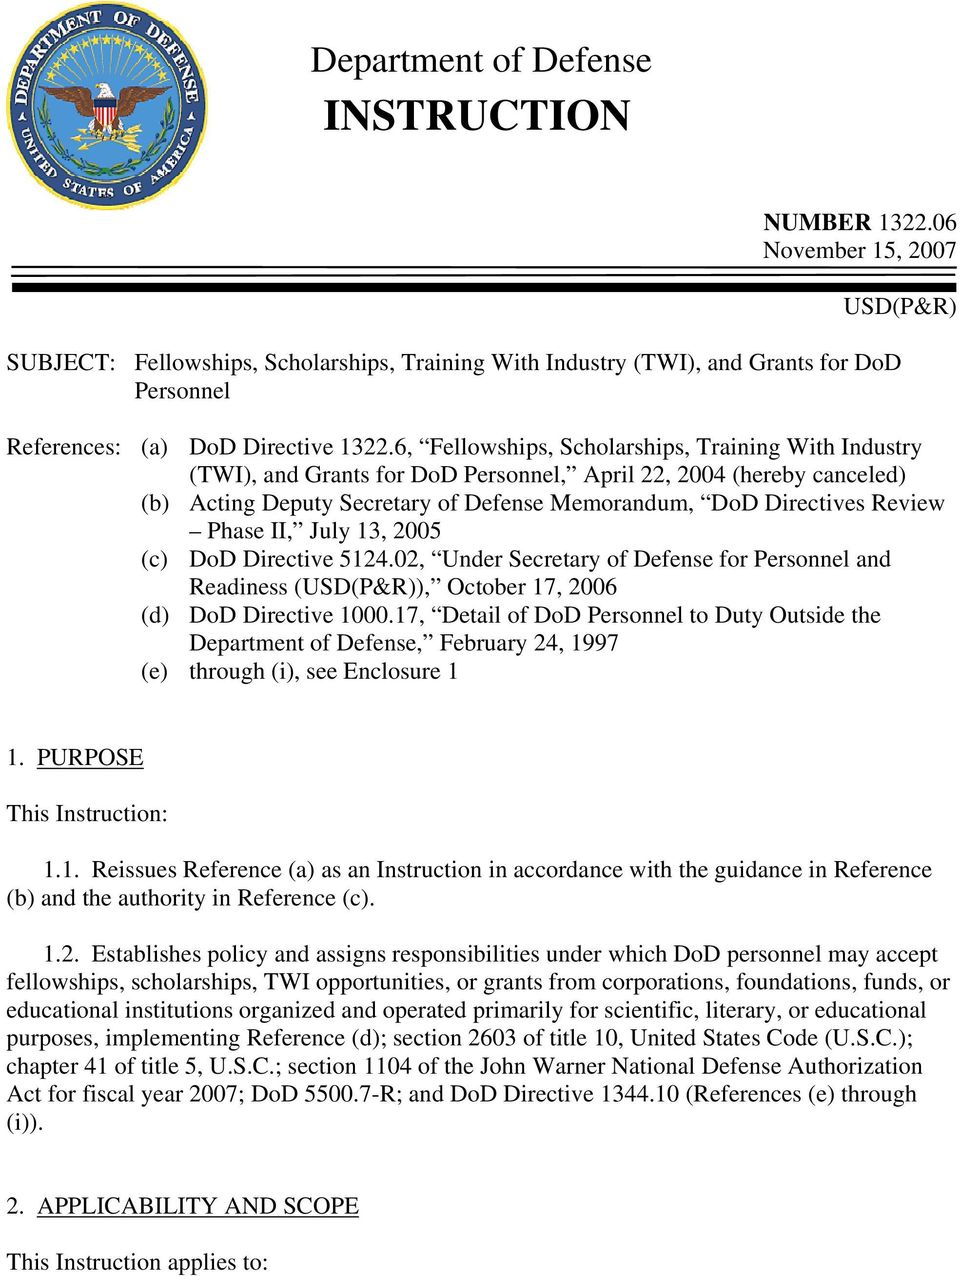 6, Fellowships, Scholarships, Training With Industry (TWI), and Grants for DoD Personnel, April 22, 2004 (hereby canceled) (b) Acting Deputy Secretary of Defense Memorandum, DoD Directives Review